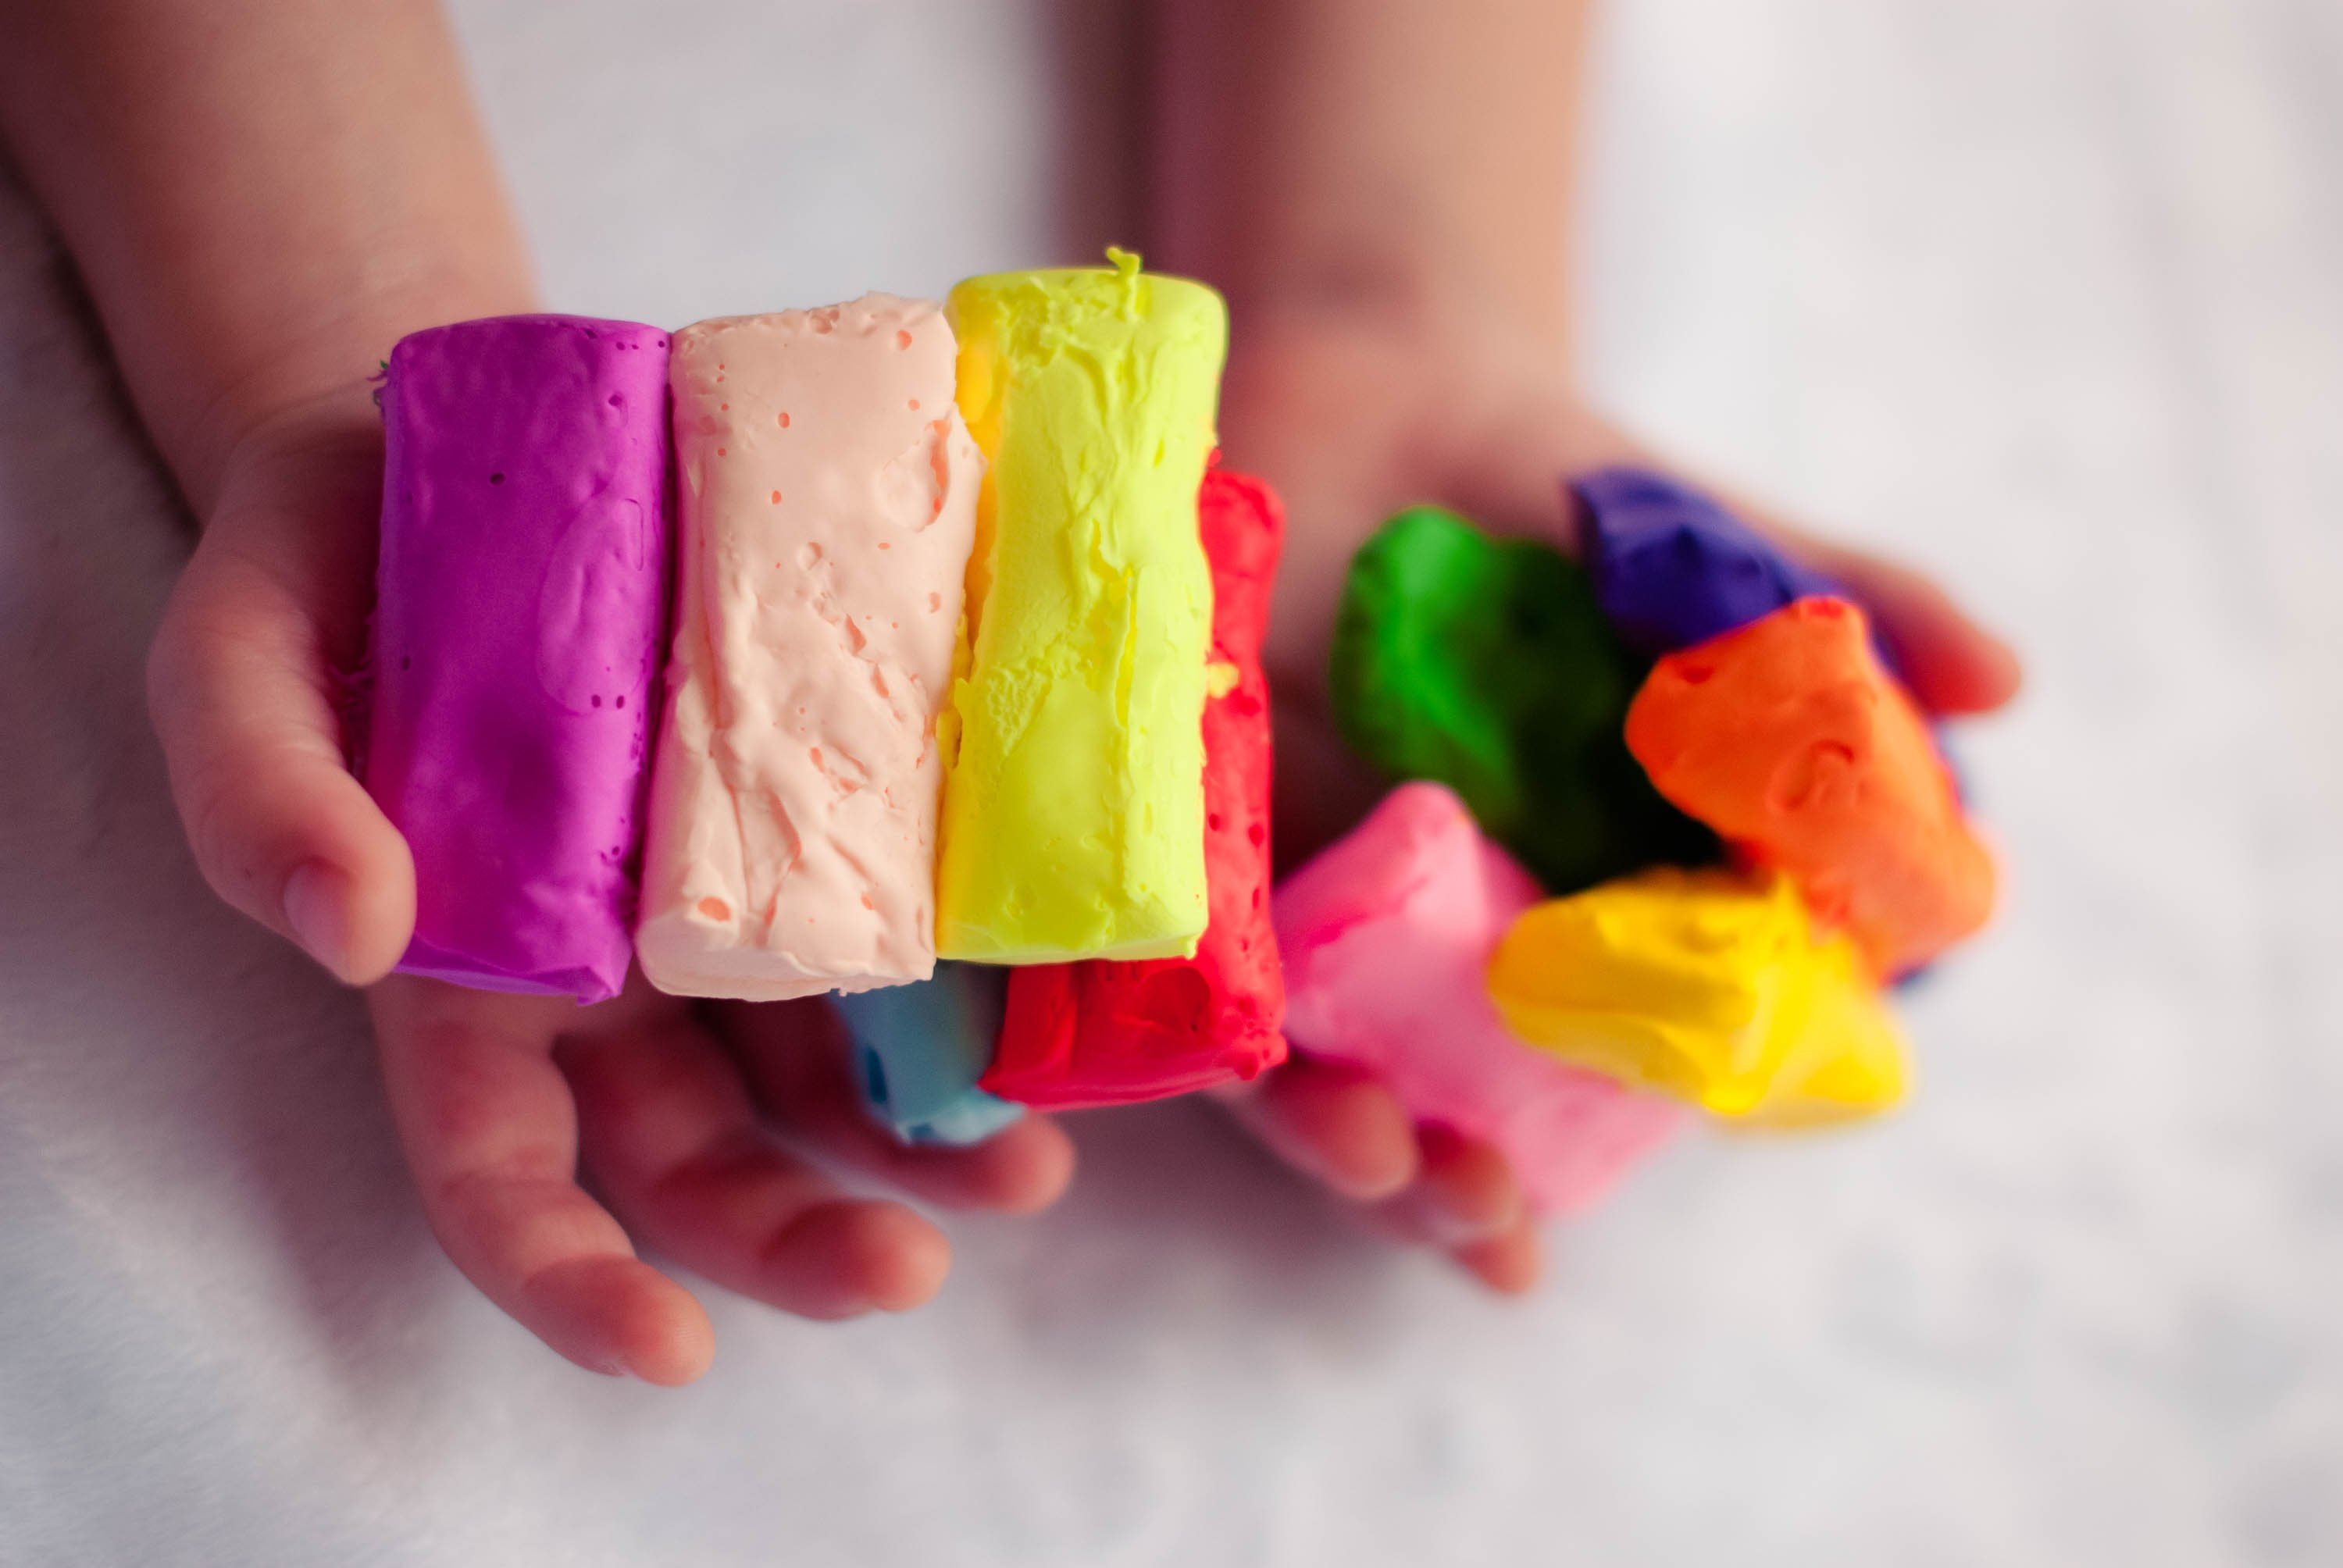 bright plasticine for children's creativity